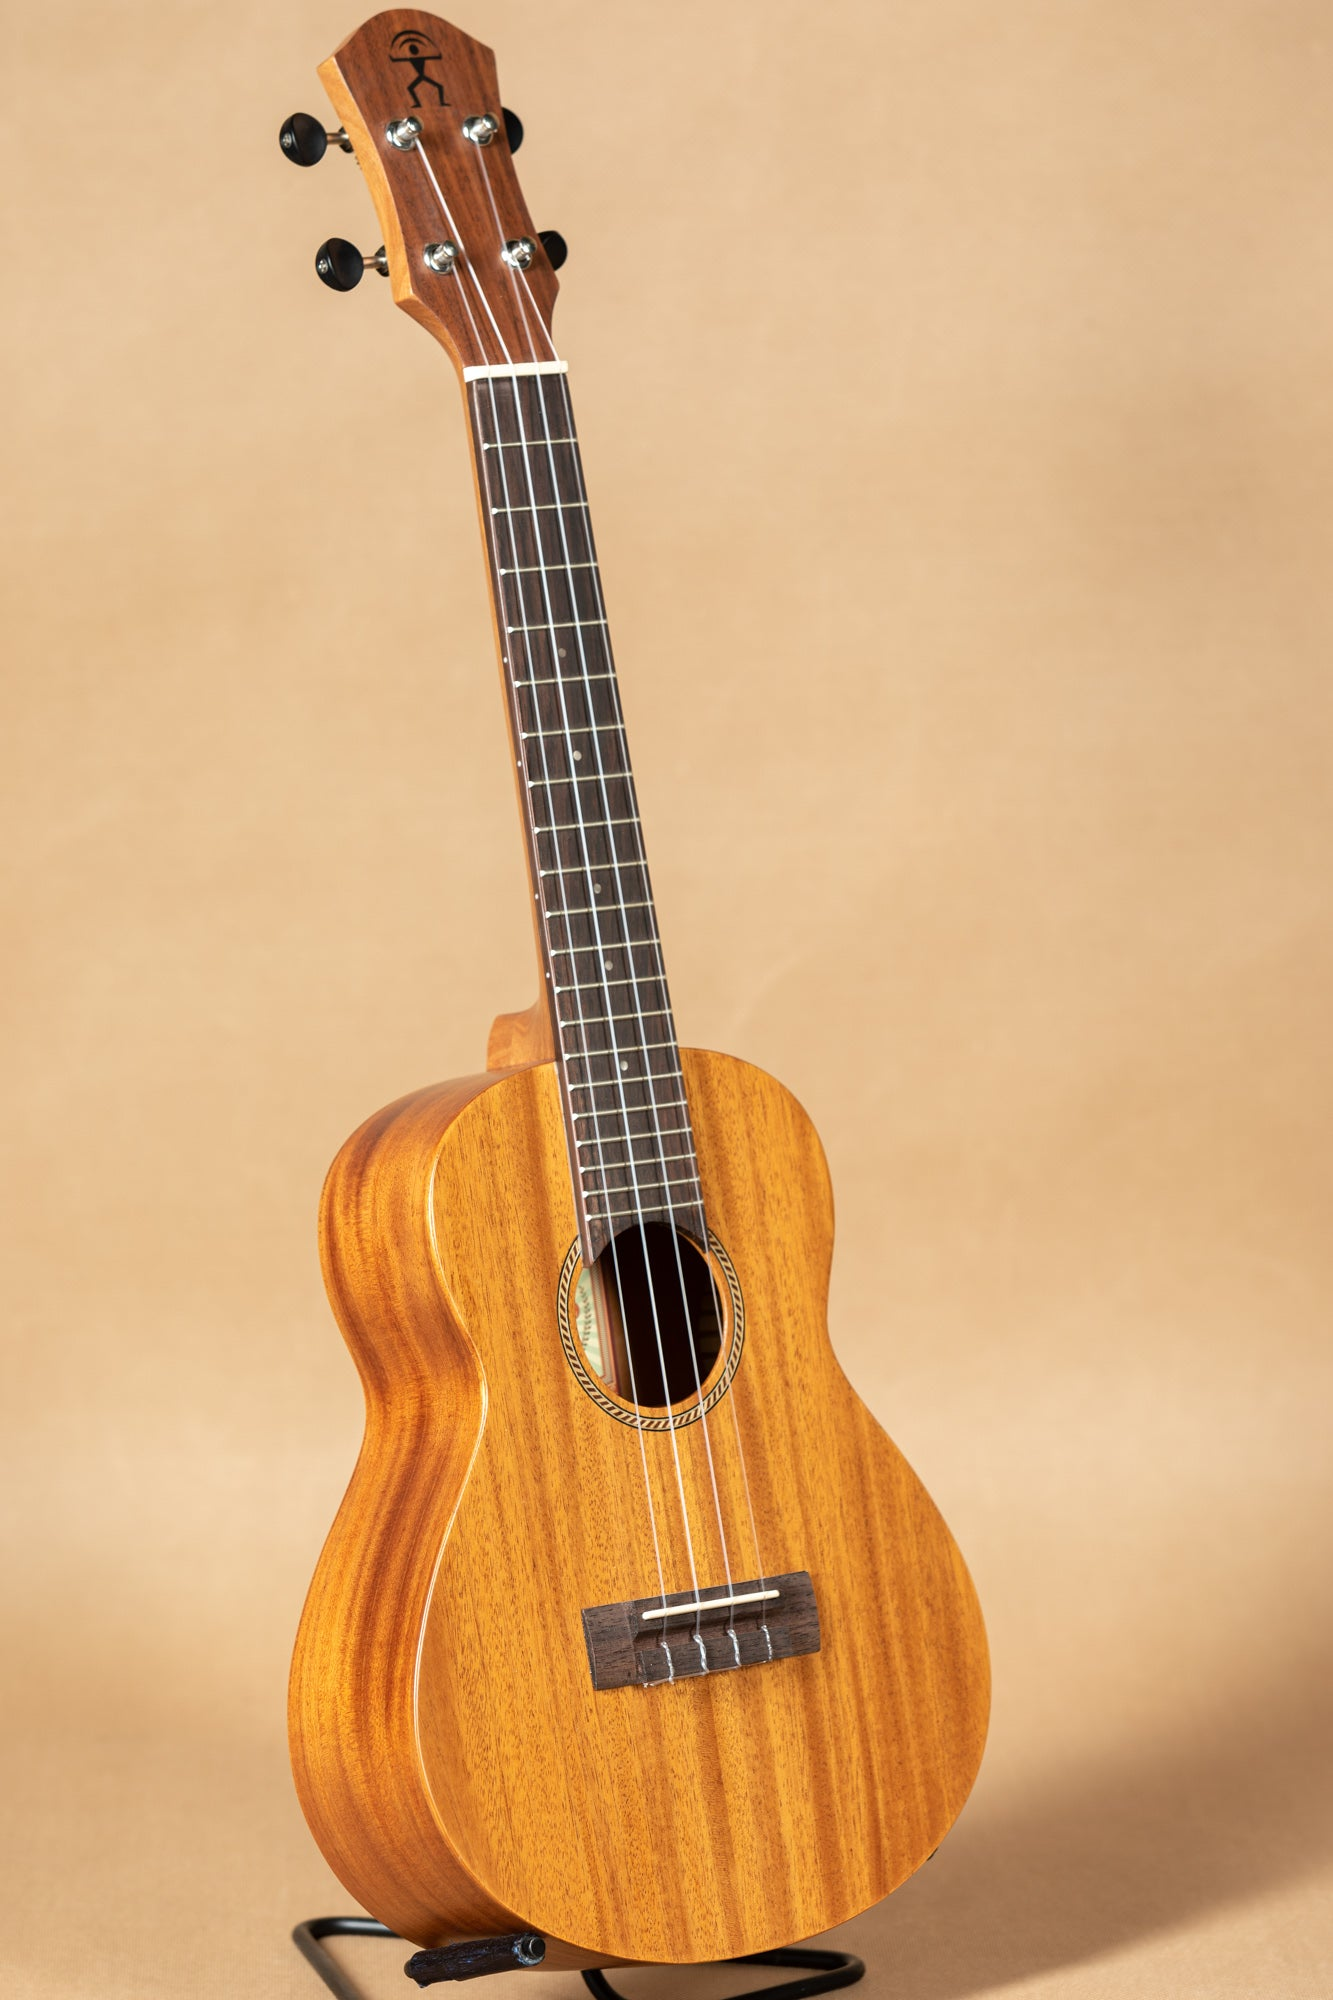 aNueNue Hawaiian Dream Series C30 All Solid African Mahogany Concert Ukulele